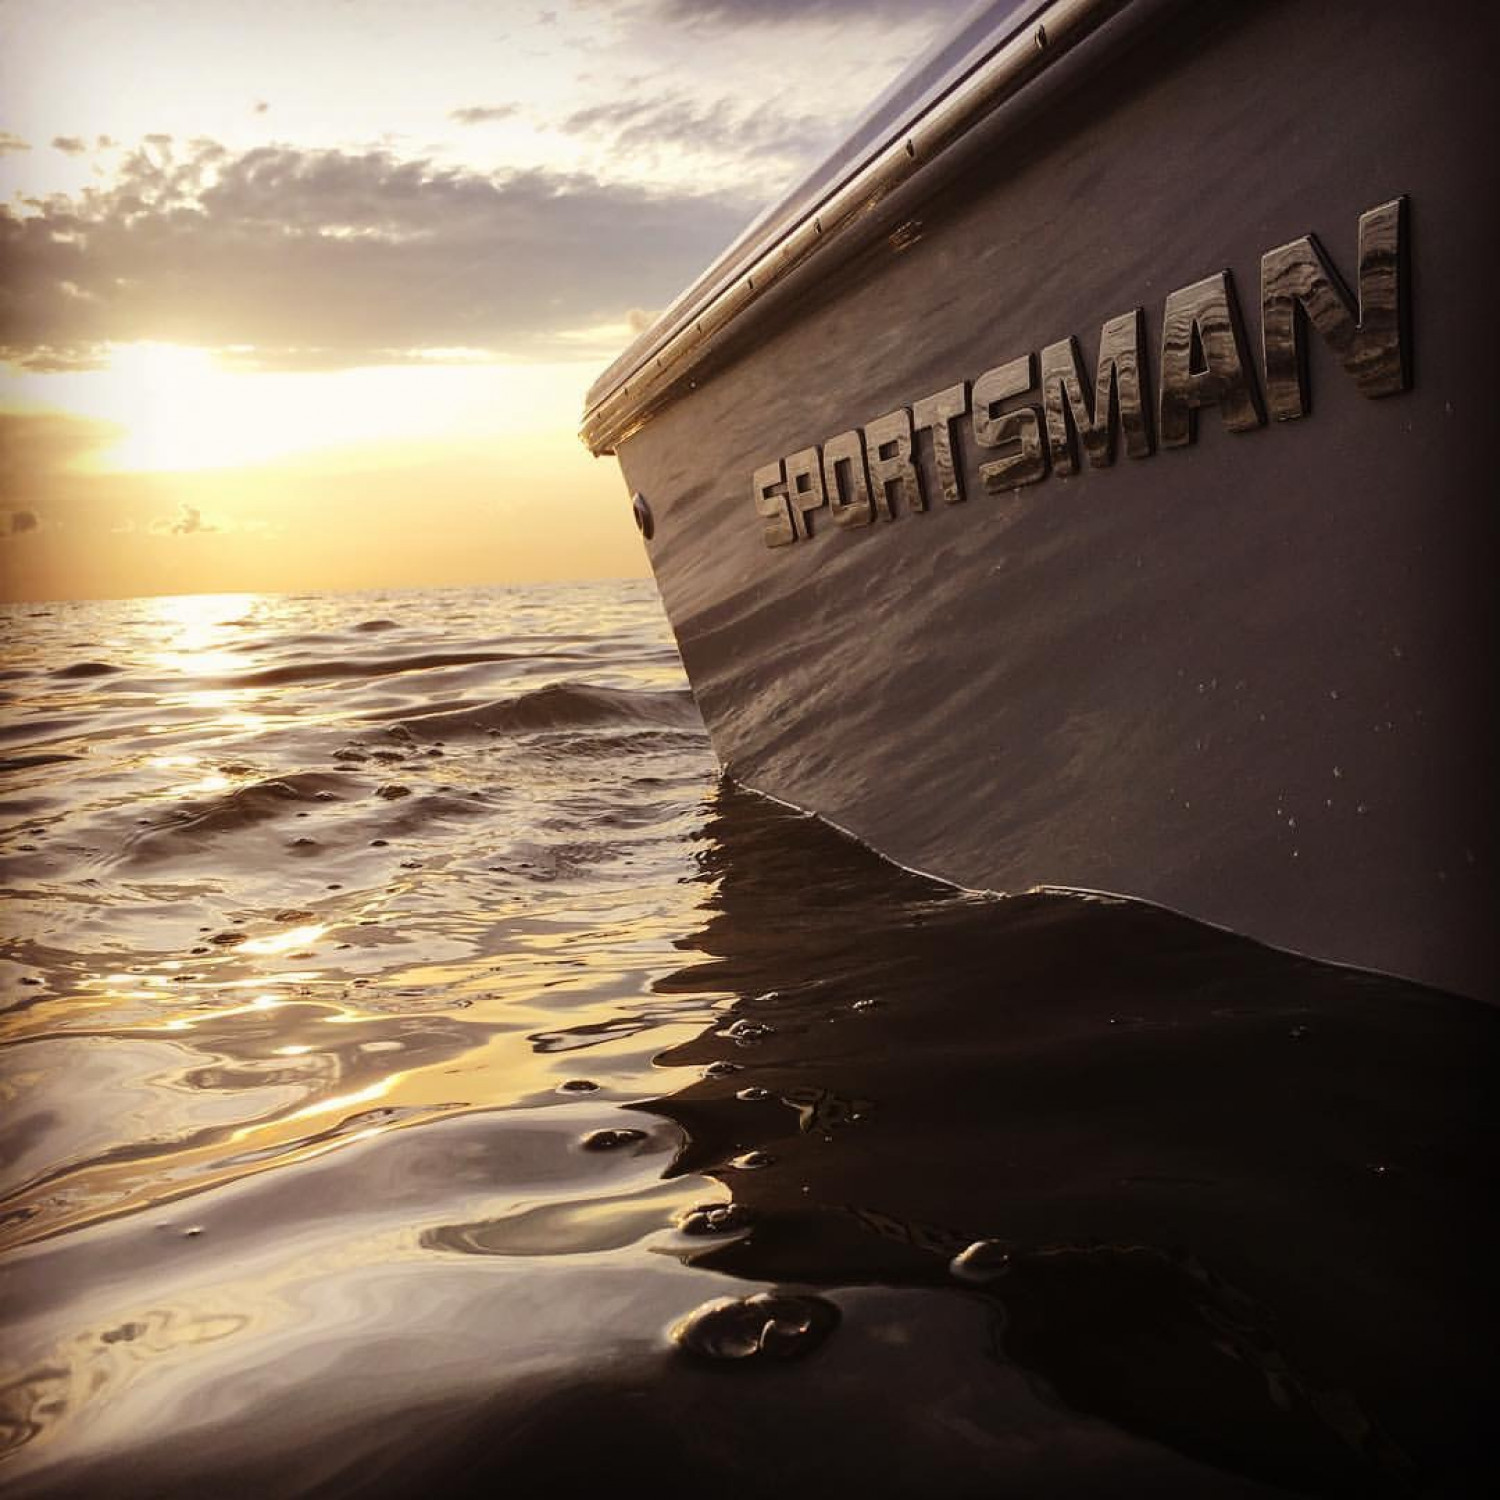 Title: A SPORTSMAN sunset - On board their Sportsman Masters 227 Bay Boat - Location: Grand Isle, LA. Participating in the Photo Contest #SportsmanMarch2018